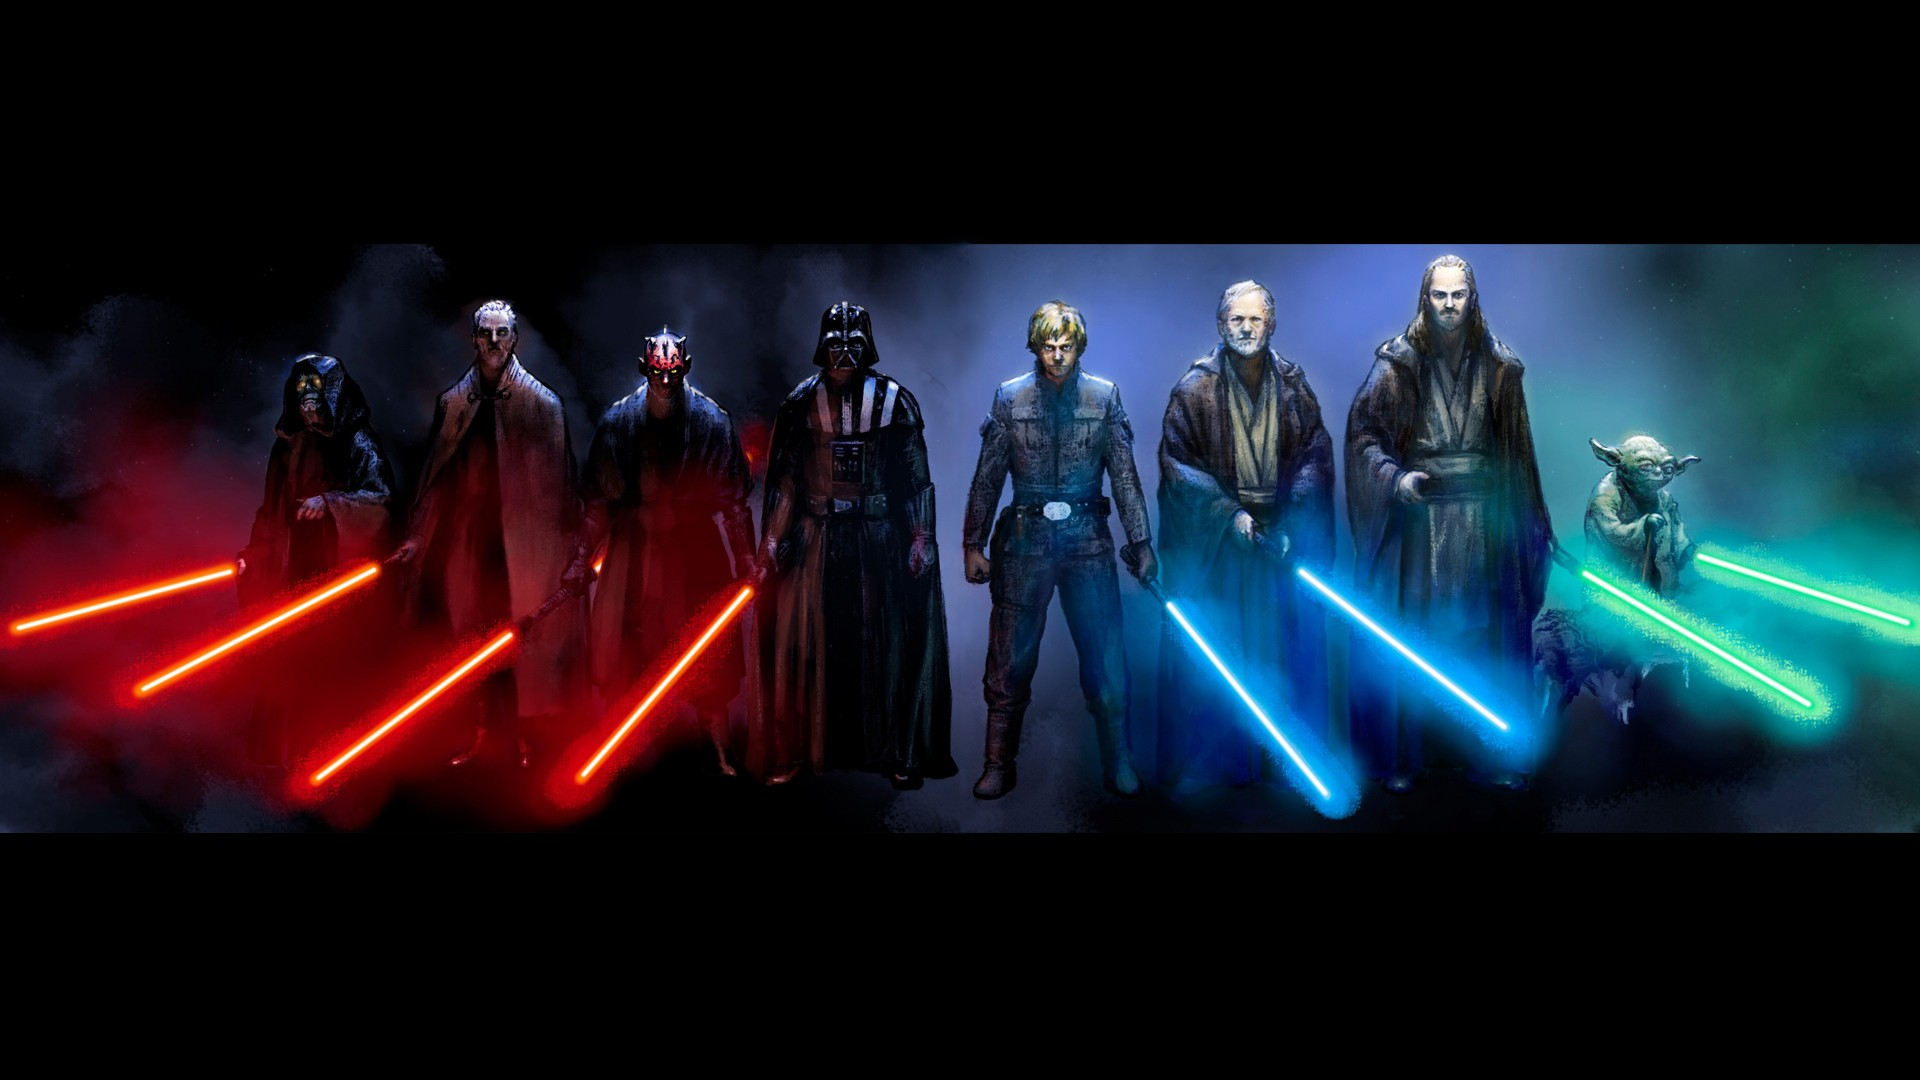 1920x1080 Star Wars Sith and Jedi desktop PC and Mac wallpaper 1920x1080